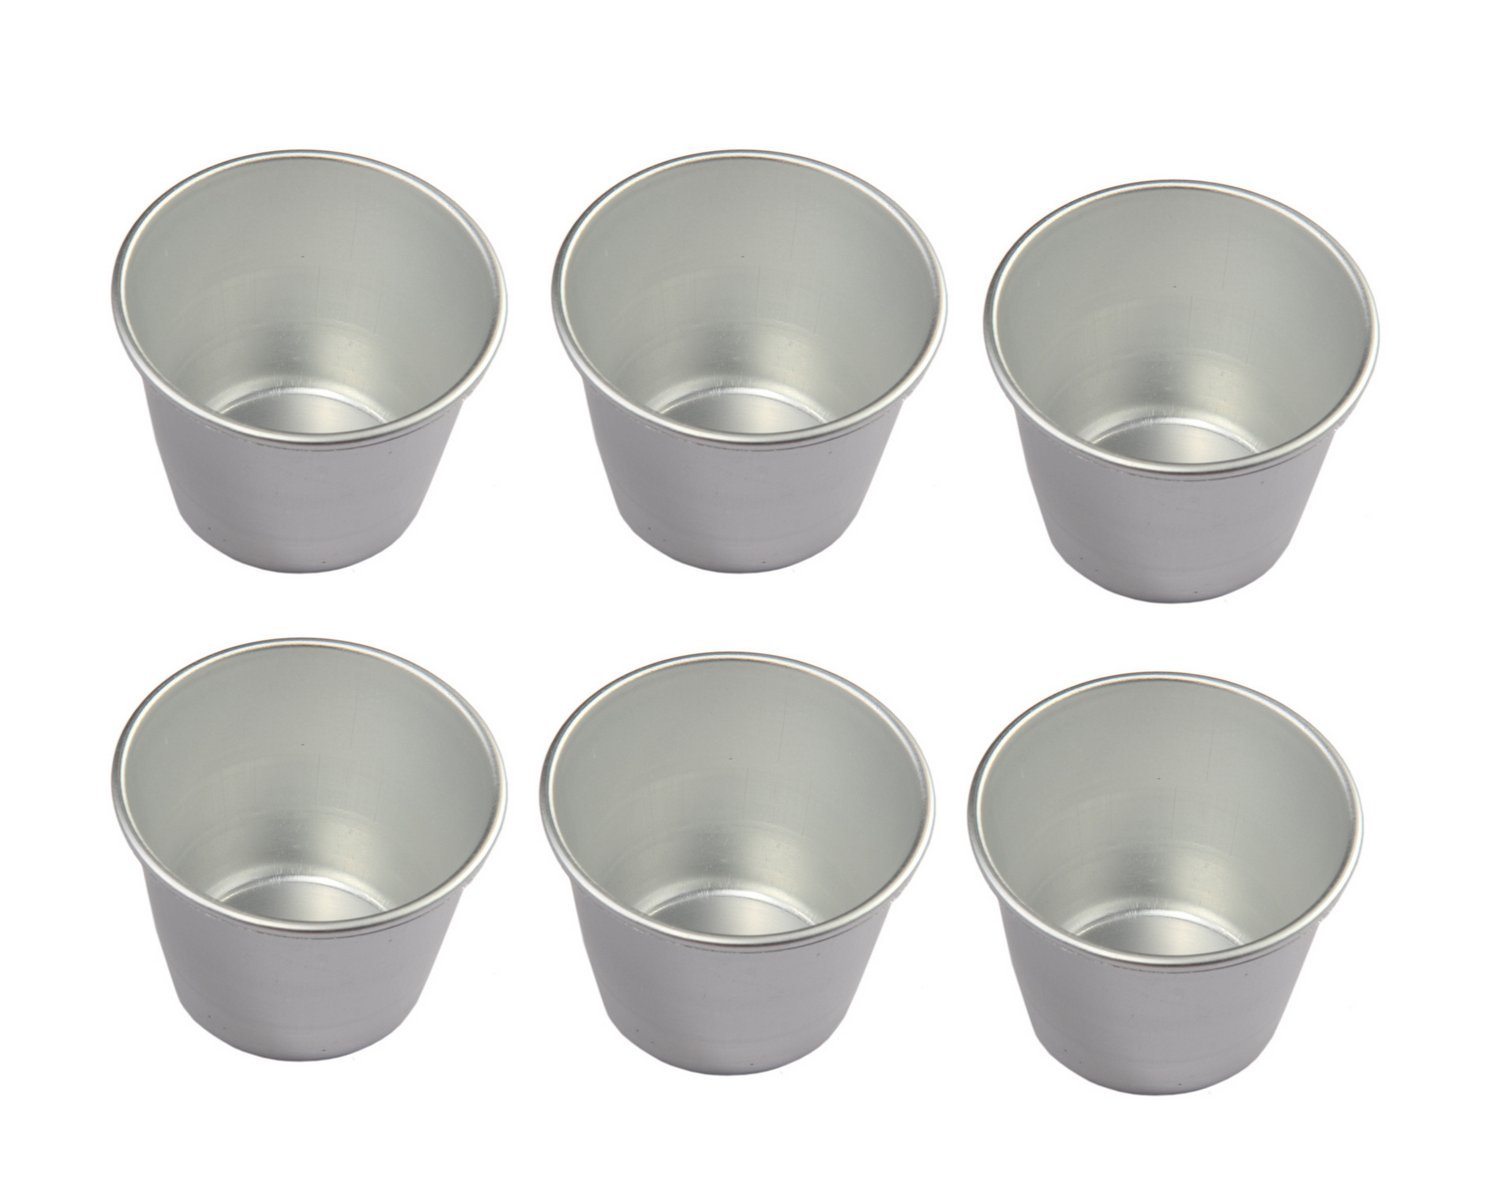 Astra shop Set of 6 Nonstick Individual Tumblers Popovers| Chocolate Molten Pans| Pudding Cups| Raspberry Souffle Pot| Darioles Ramekins Brownies Mold - Size 3 Inches by Astra shop